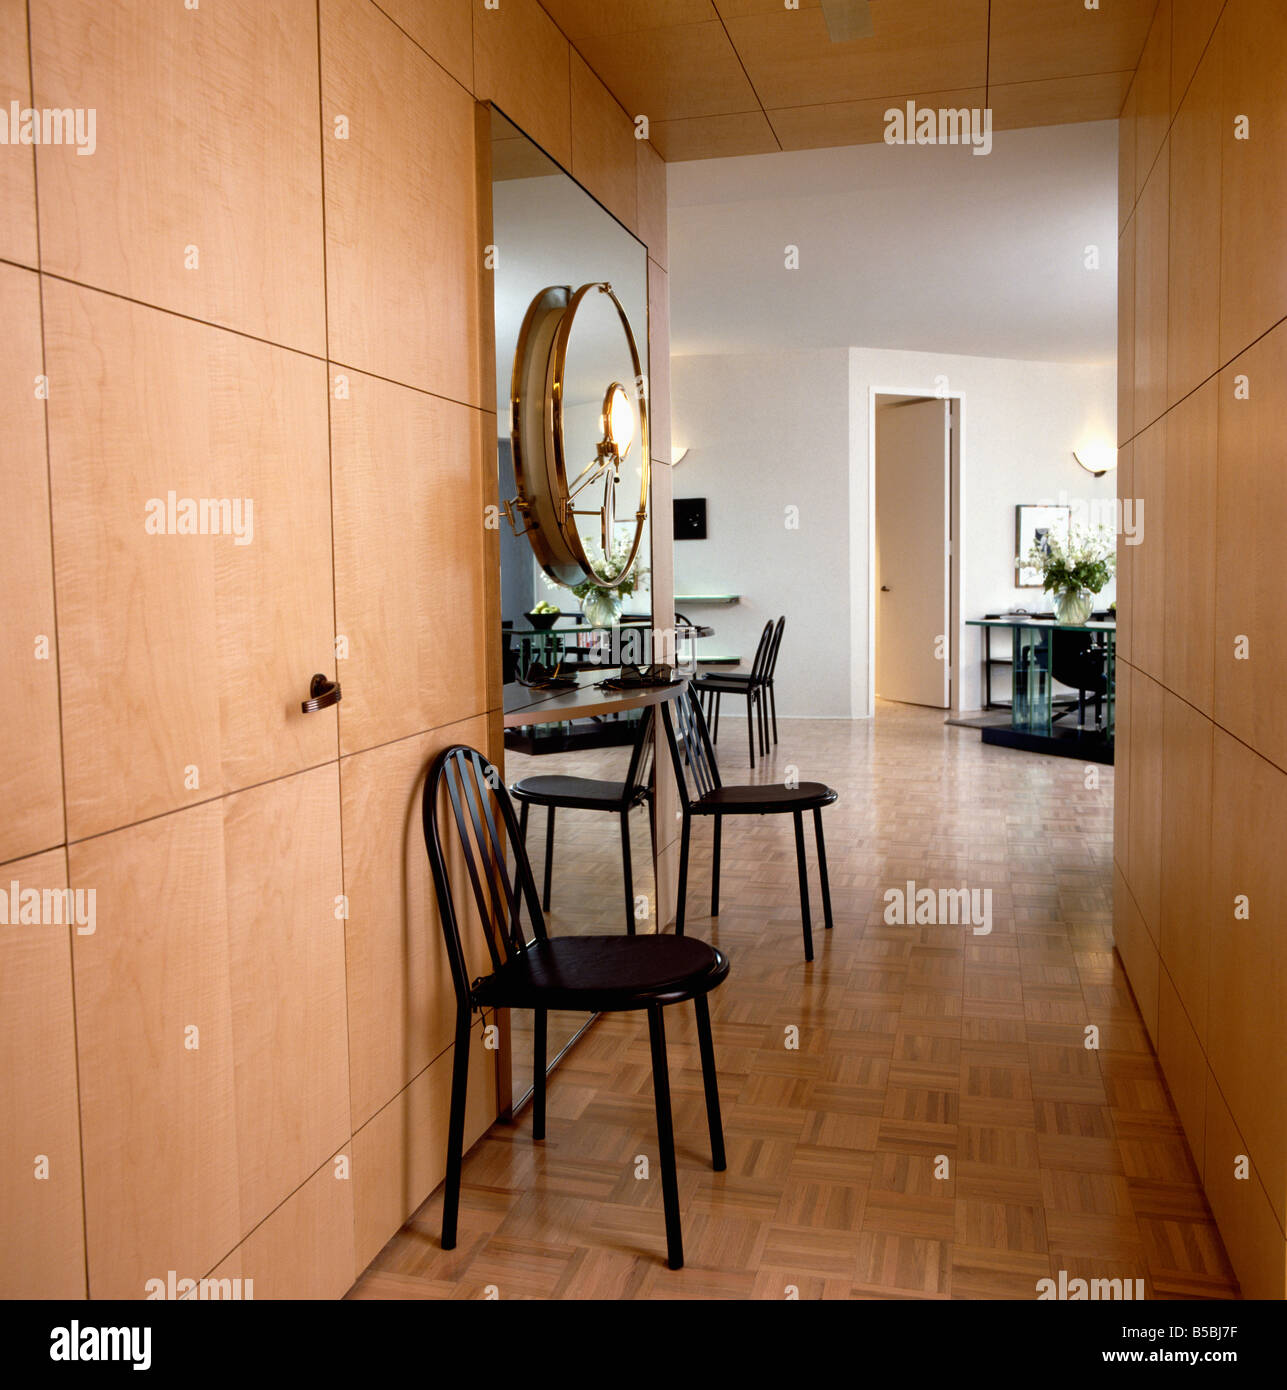 Black Metal Chairs Against Fitted Pale Wood Storage Cupboard In Modern  Openplan Apartment Hall With Clock And Woodblock Flooring